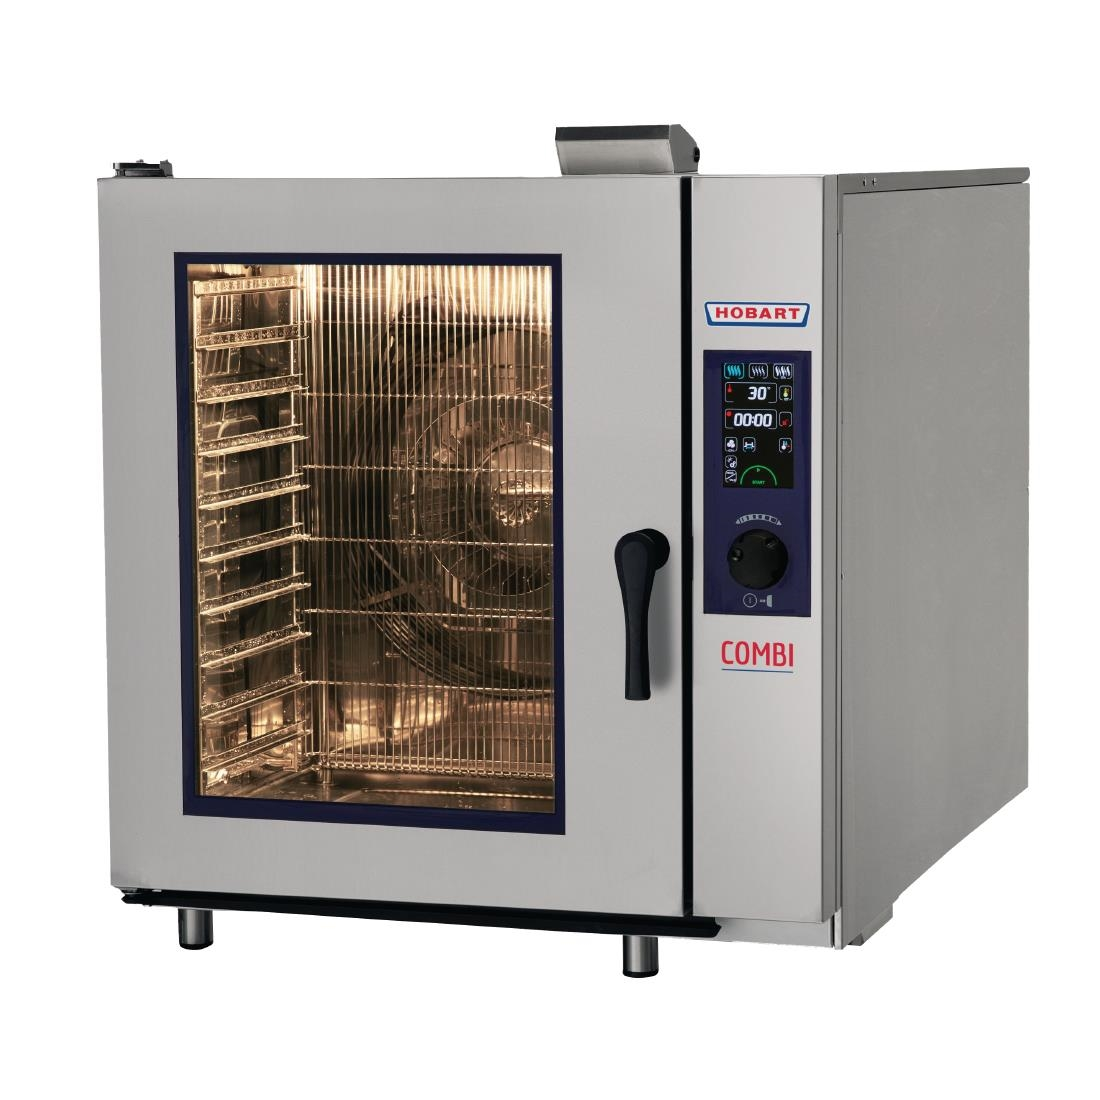 Hobart COMBI 10 x 2/1 or 20 x 1/1 GN Tray Electric Combi Oven HEJ102E